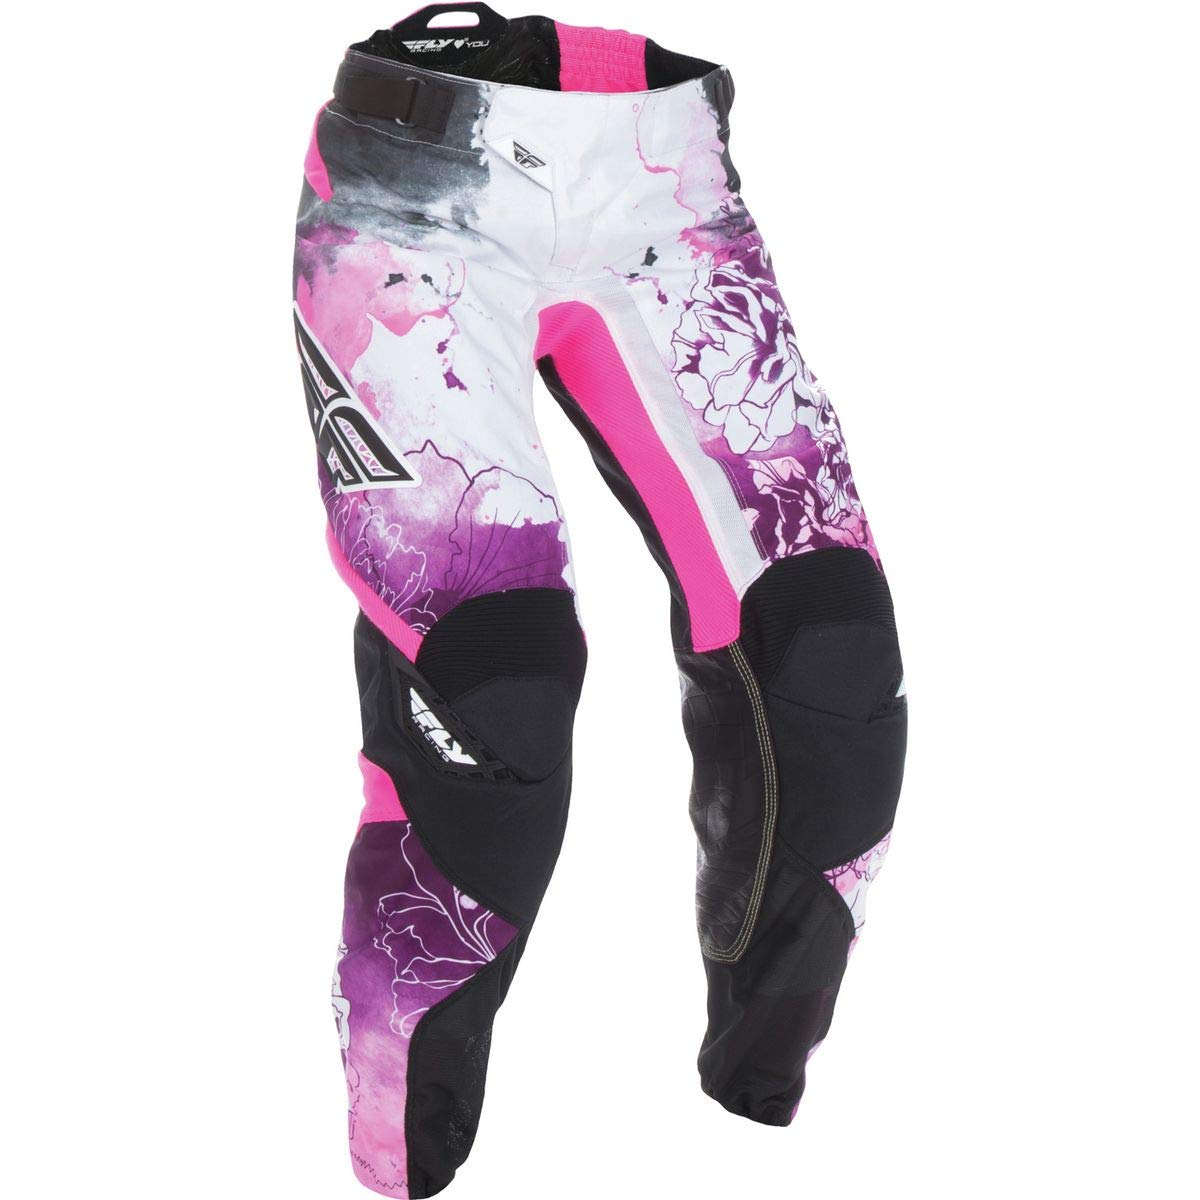 Fly Racing Unisex-Adult Kinetic Women's Race Pants (Pink/Purple, Size 78) by Fly Racing